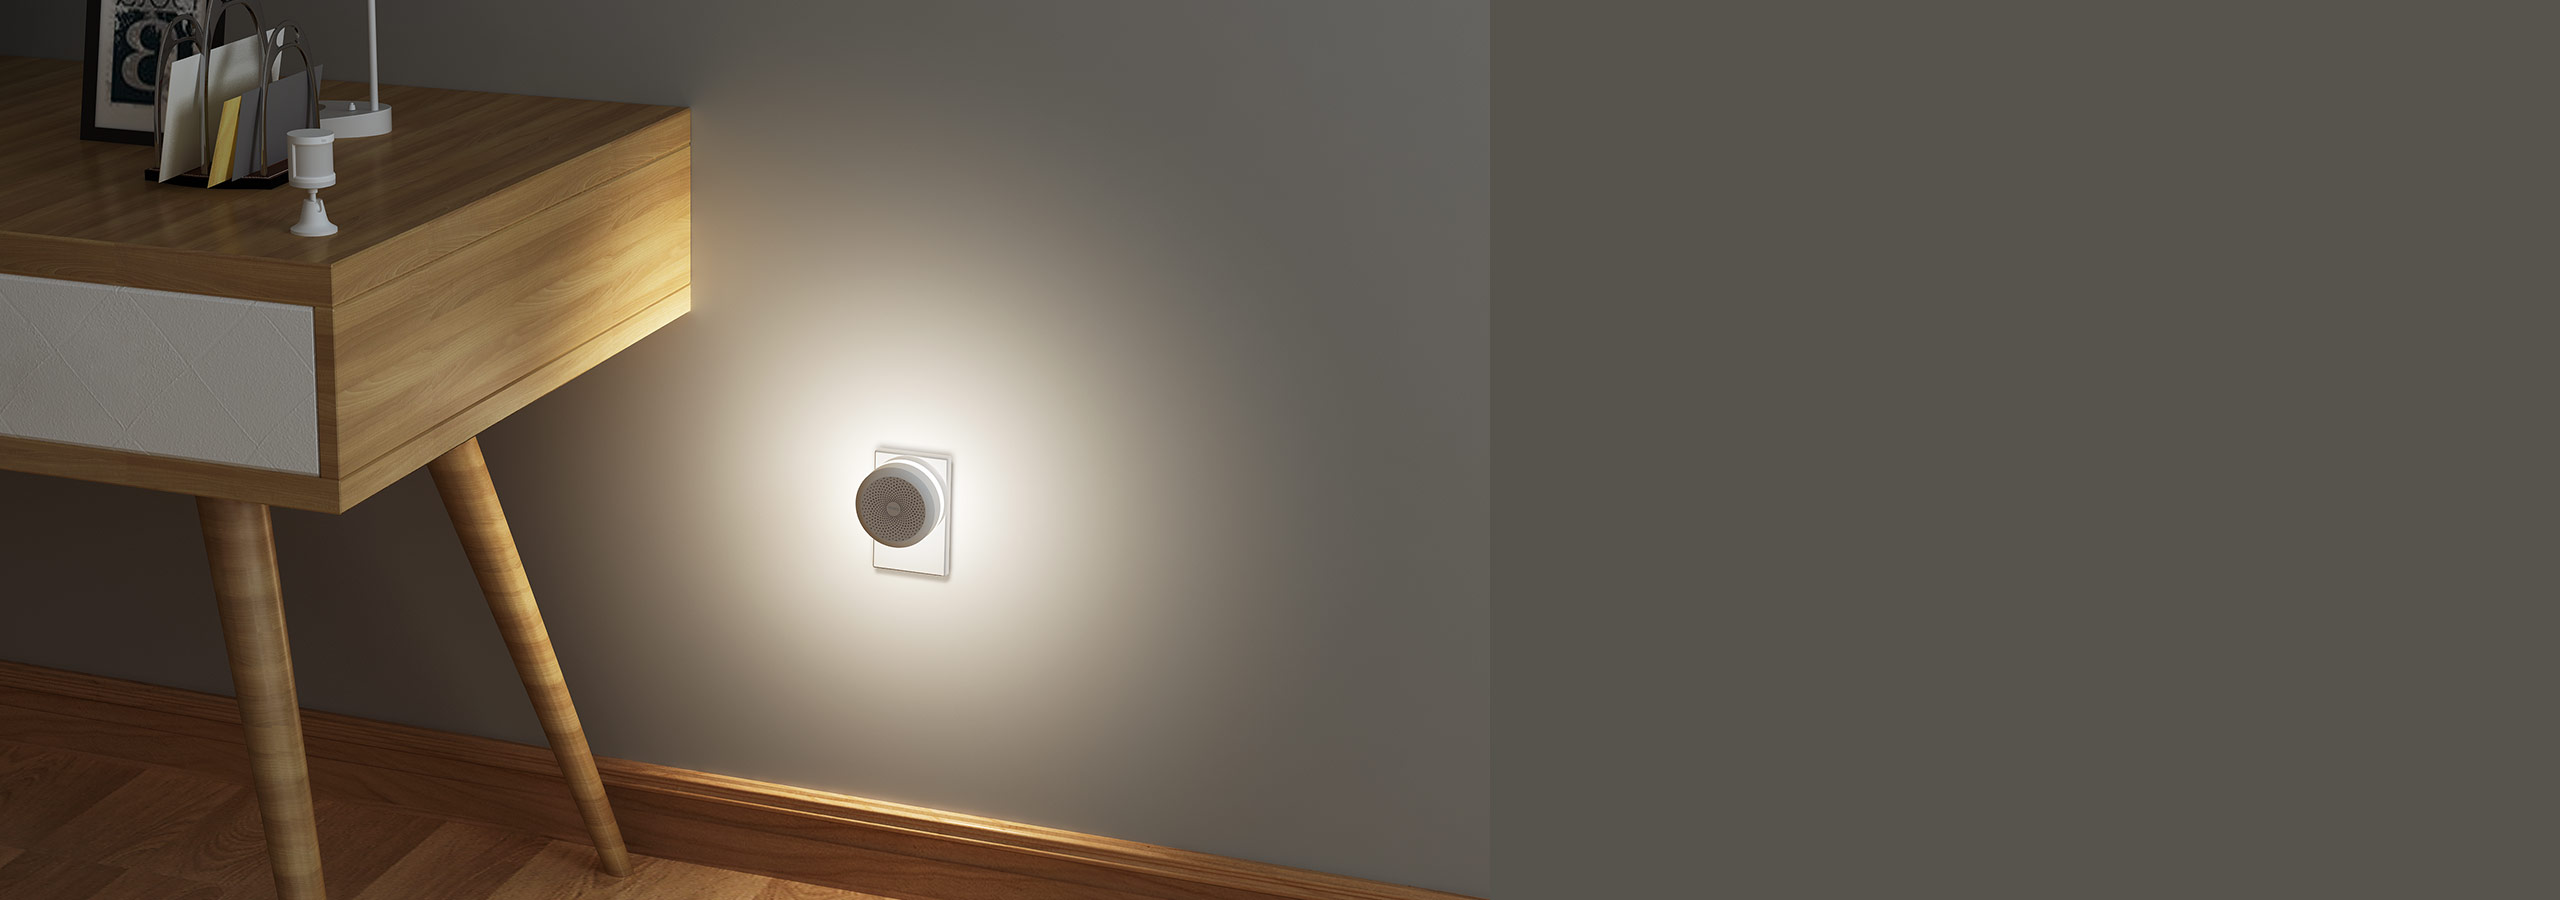 Aqara hub night light with motion sensor